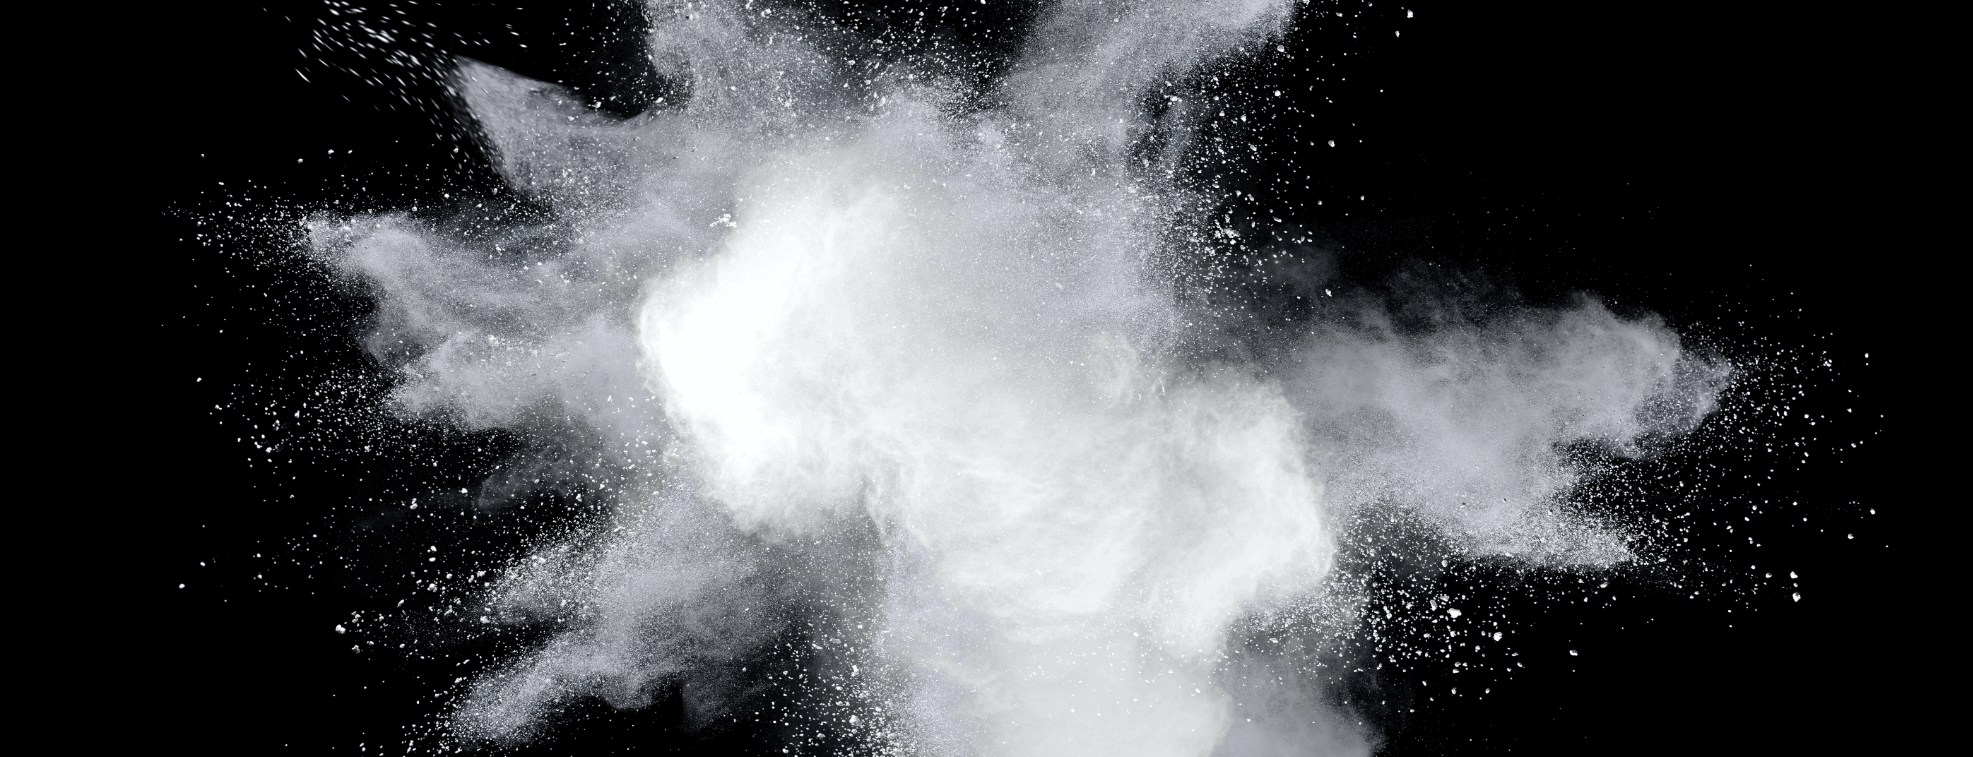 White smoke=looking paint over a black background